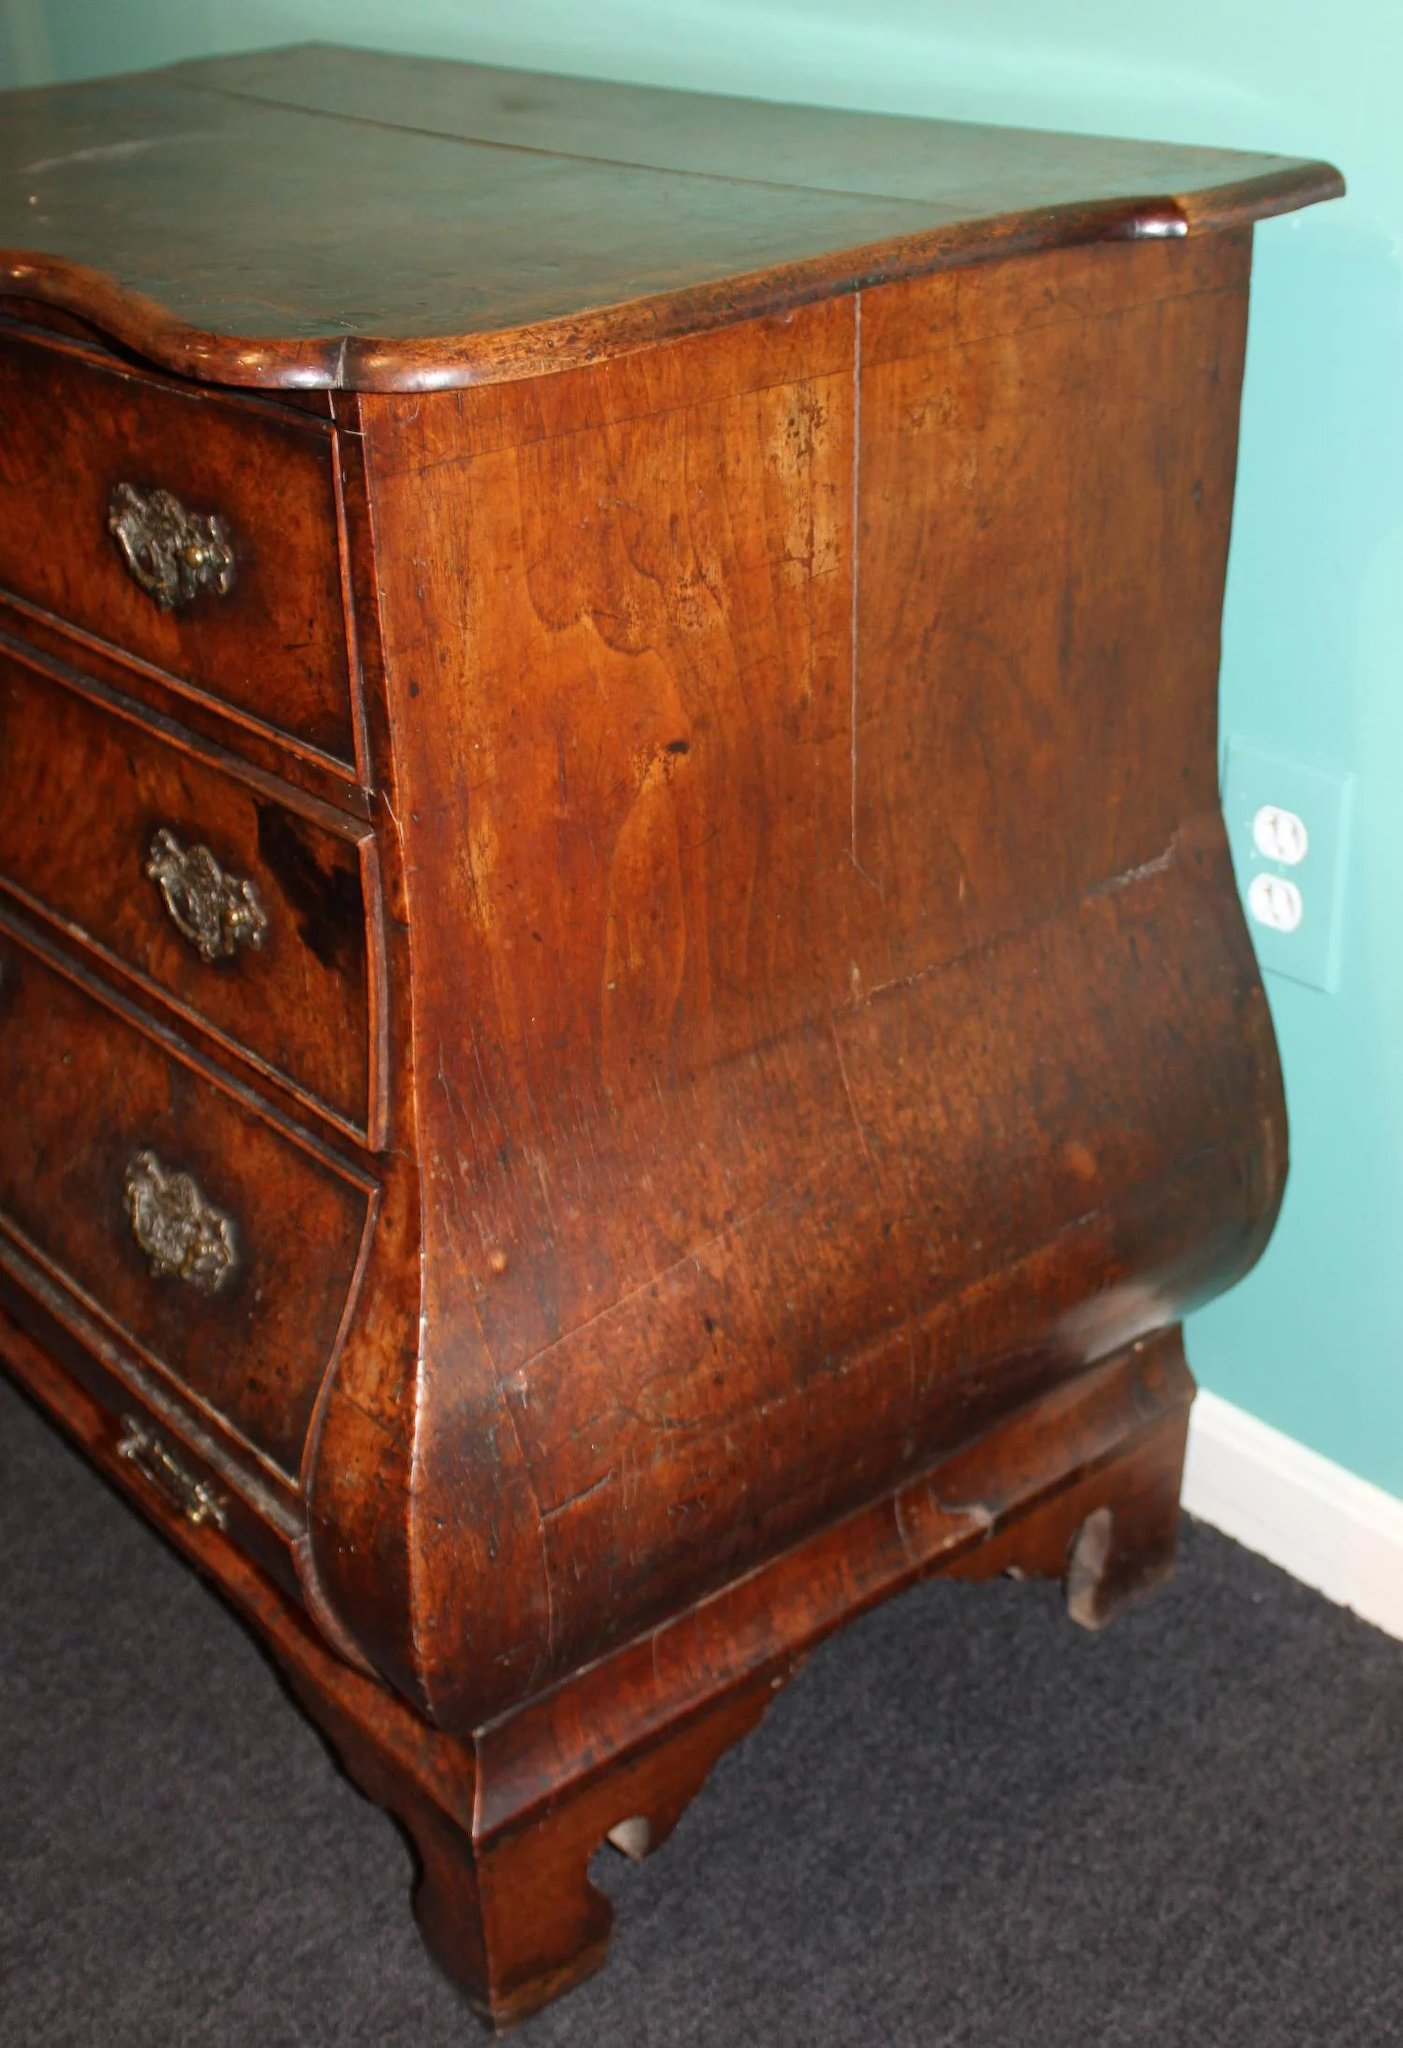 Bombe 94 en ce qui concerne diminutive 19th c dutch bombe oak & walnut chest or commode : new